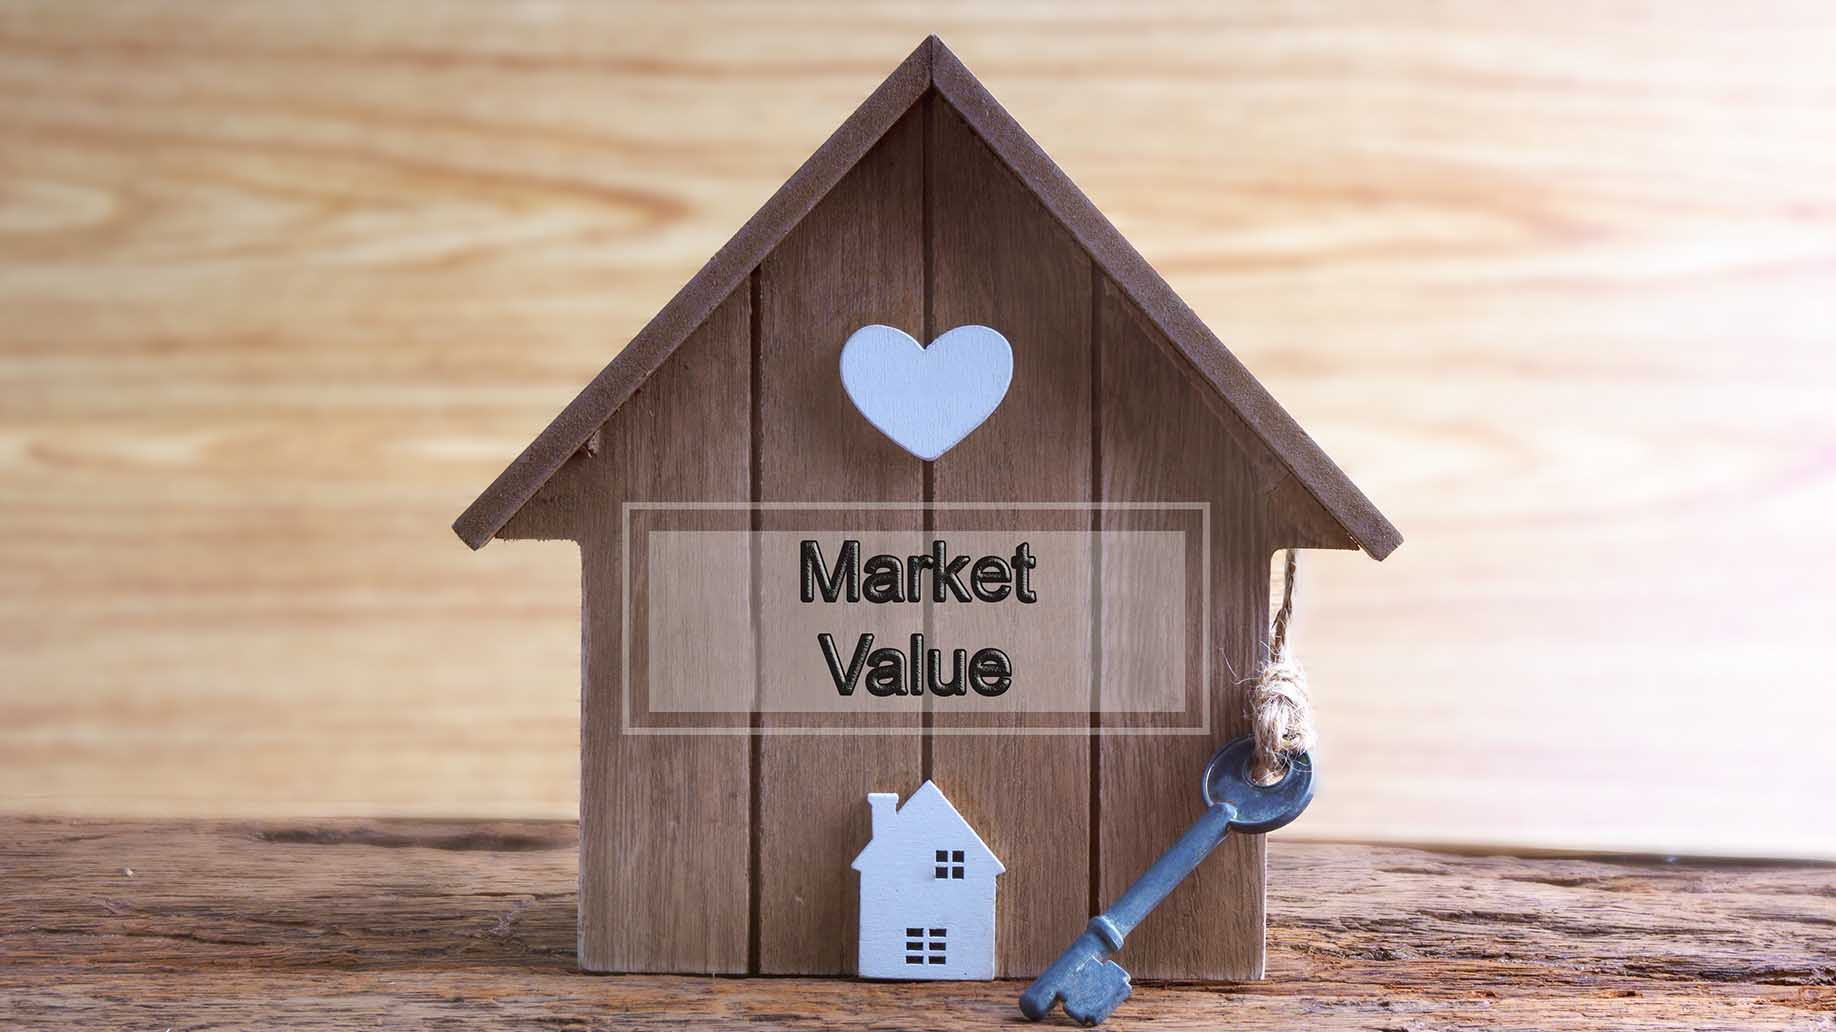 home made from wood with word written market value